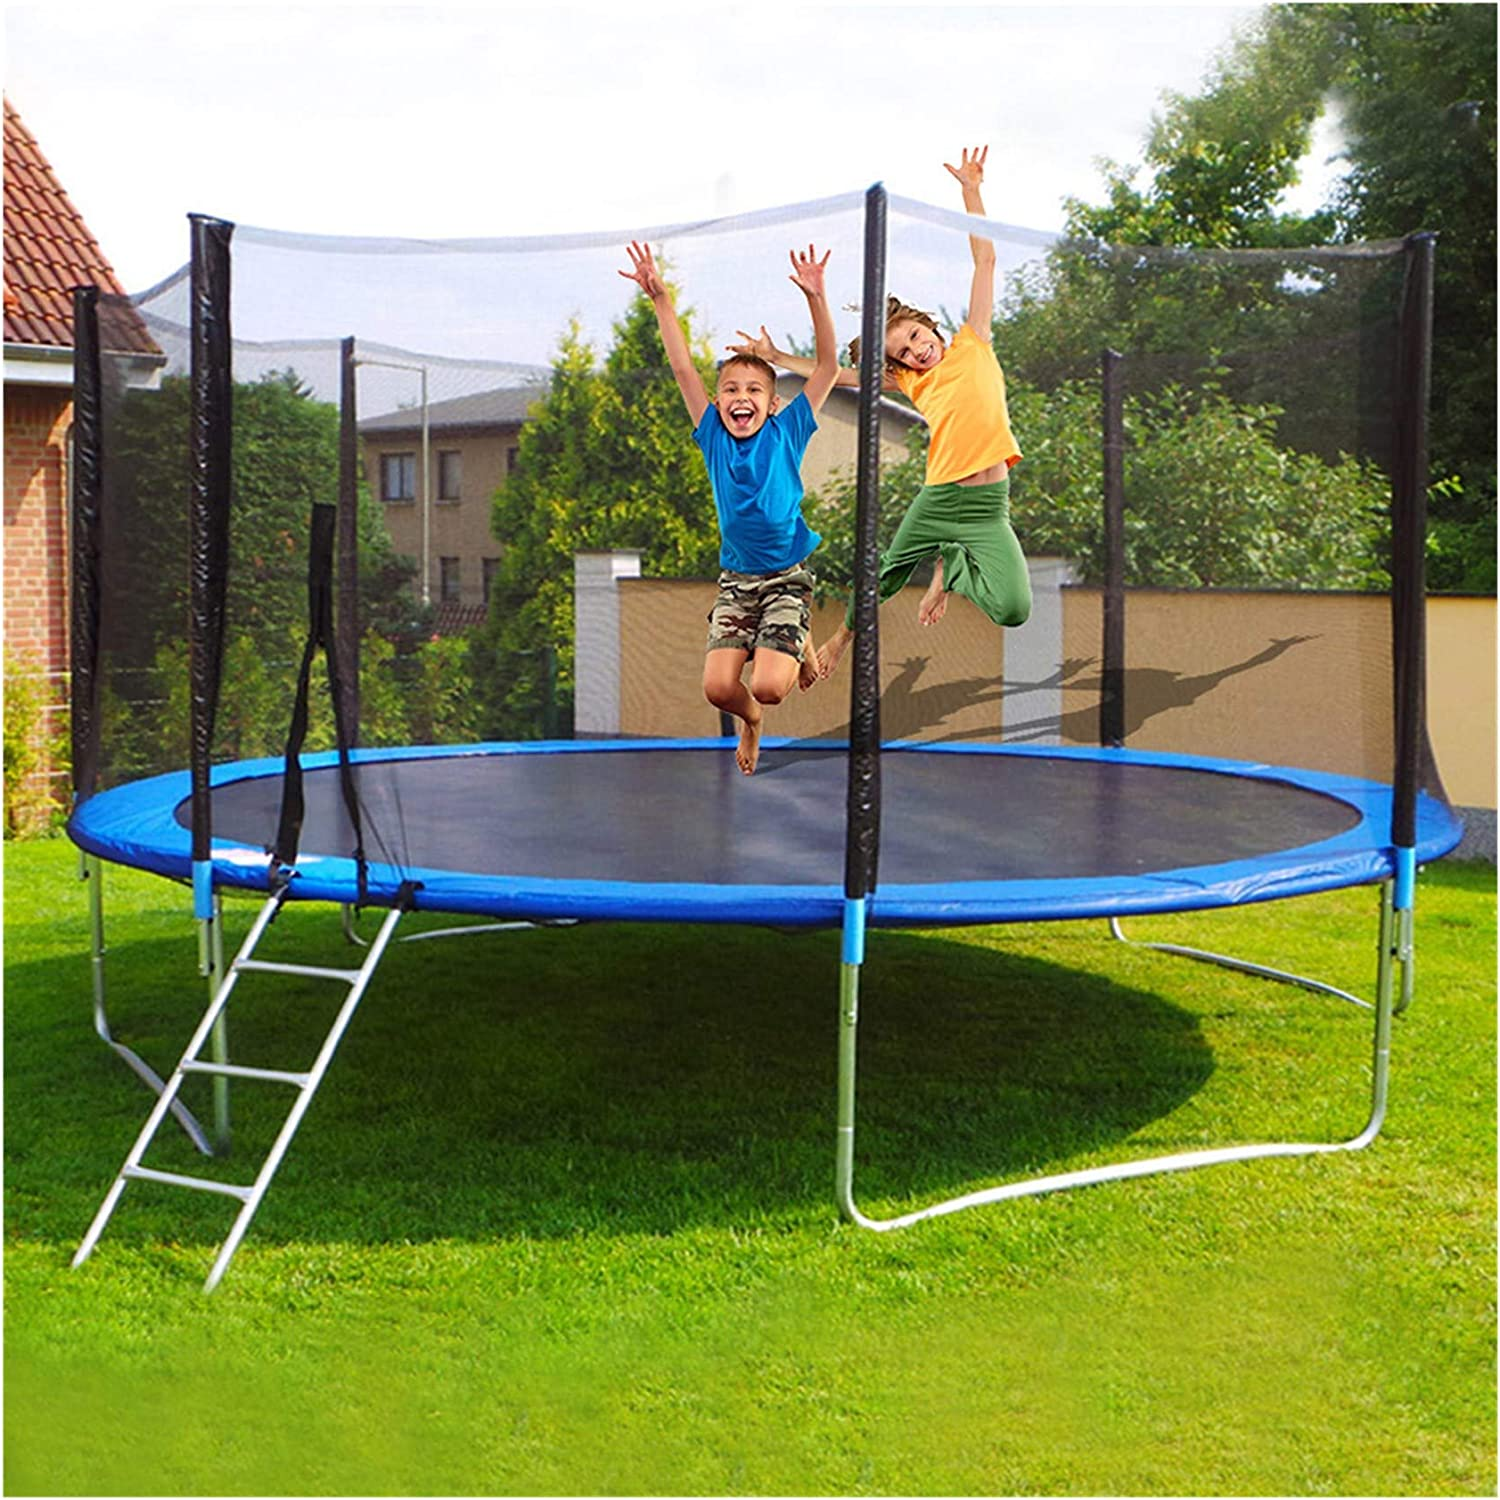 WAFamily 12 ft Round Trampoline Jumping Table with Safety Enclosure